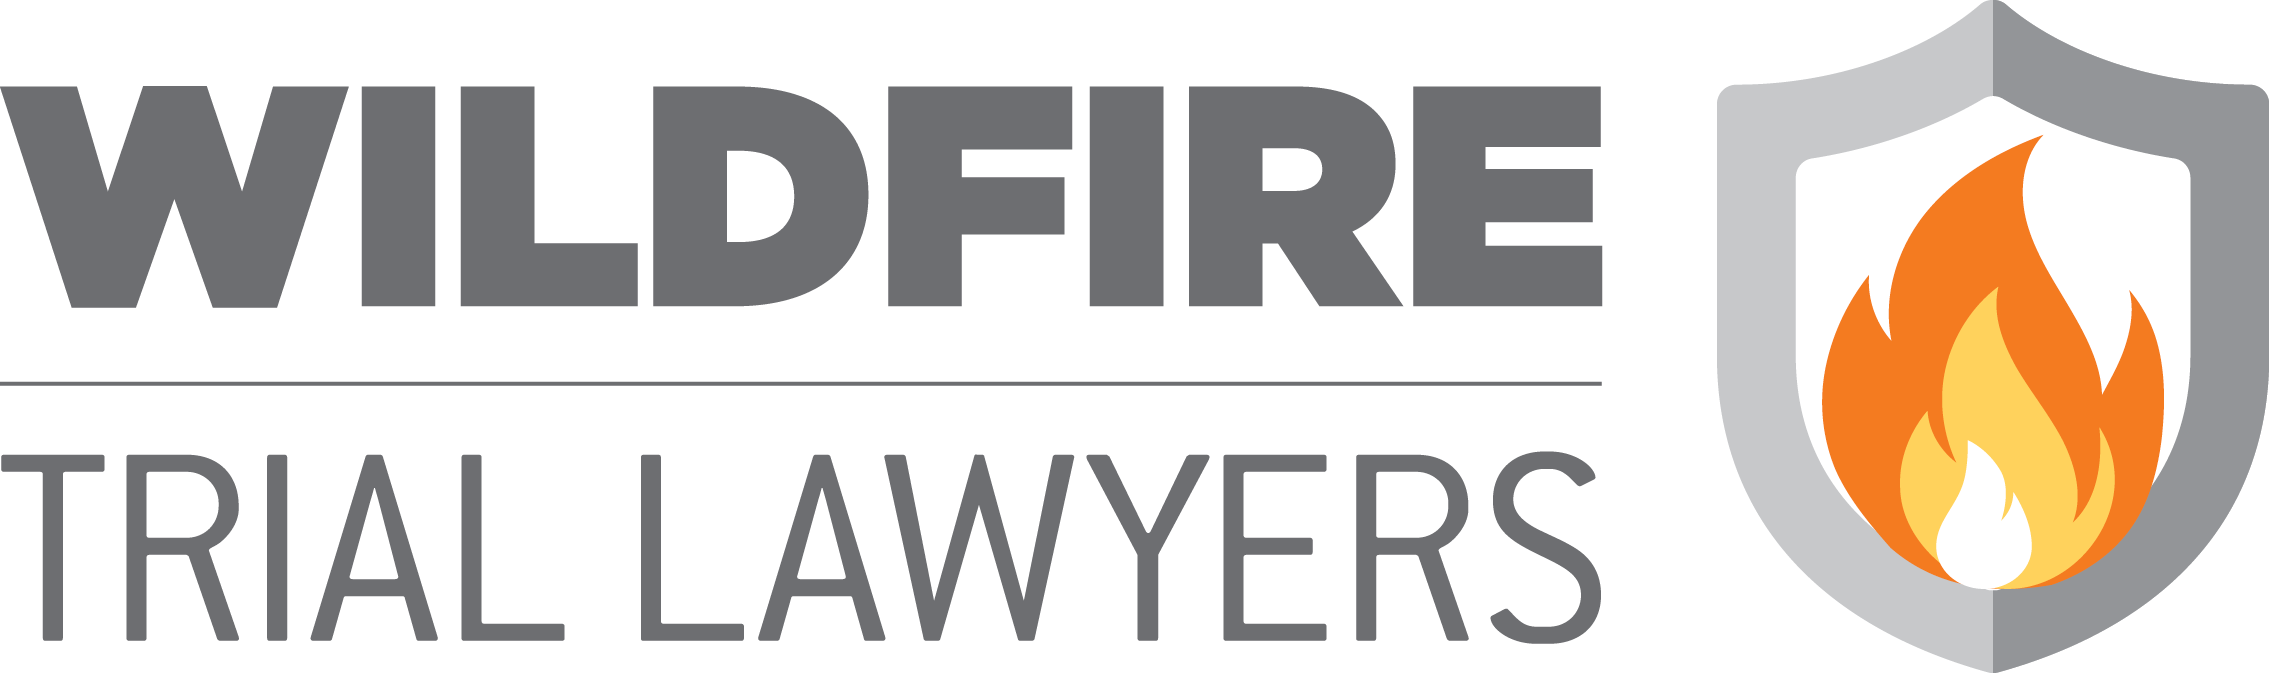 Wildfire Trial Lawyers